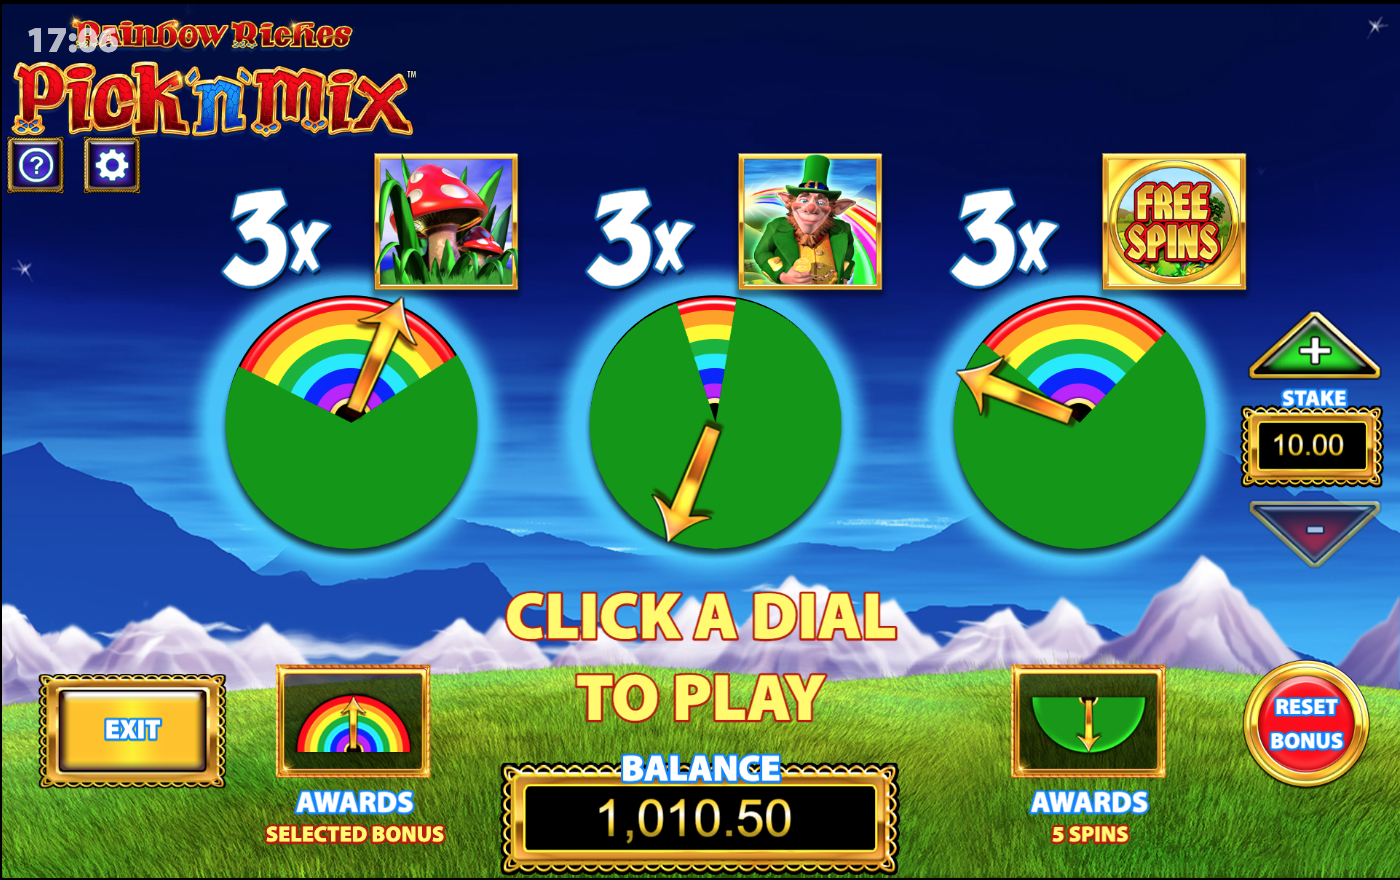 Rainbow Riches Pick'n'Mix Big Bet game